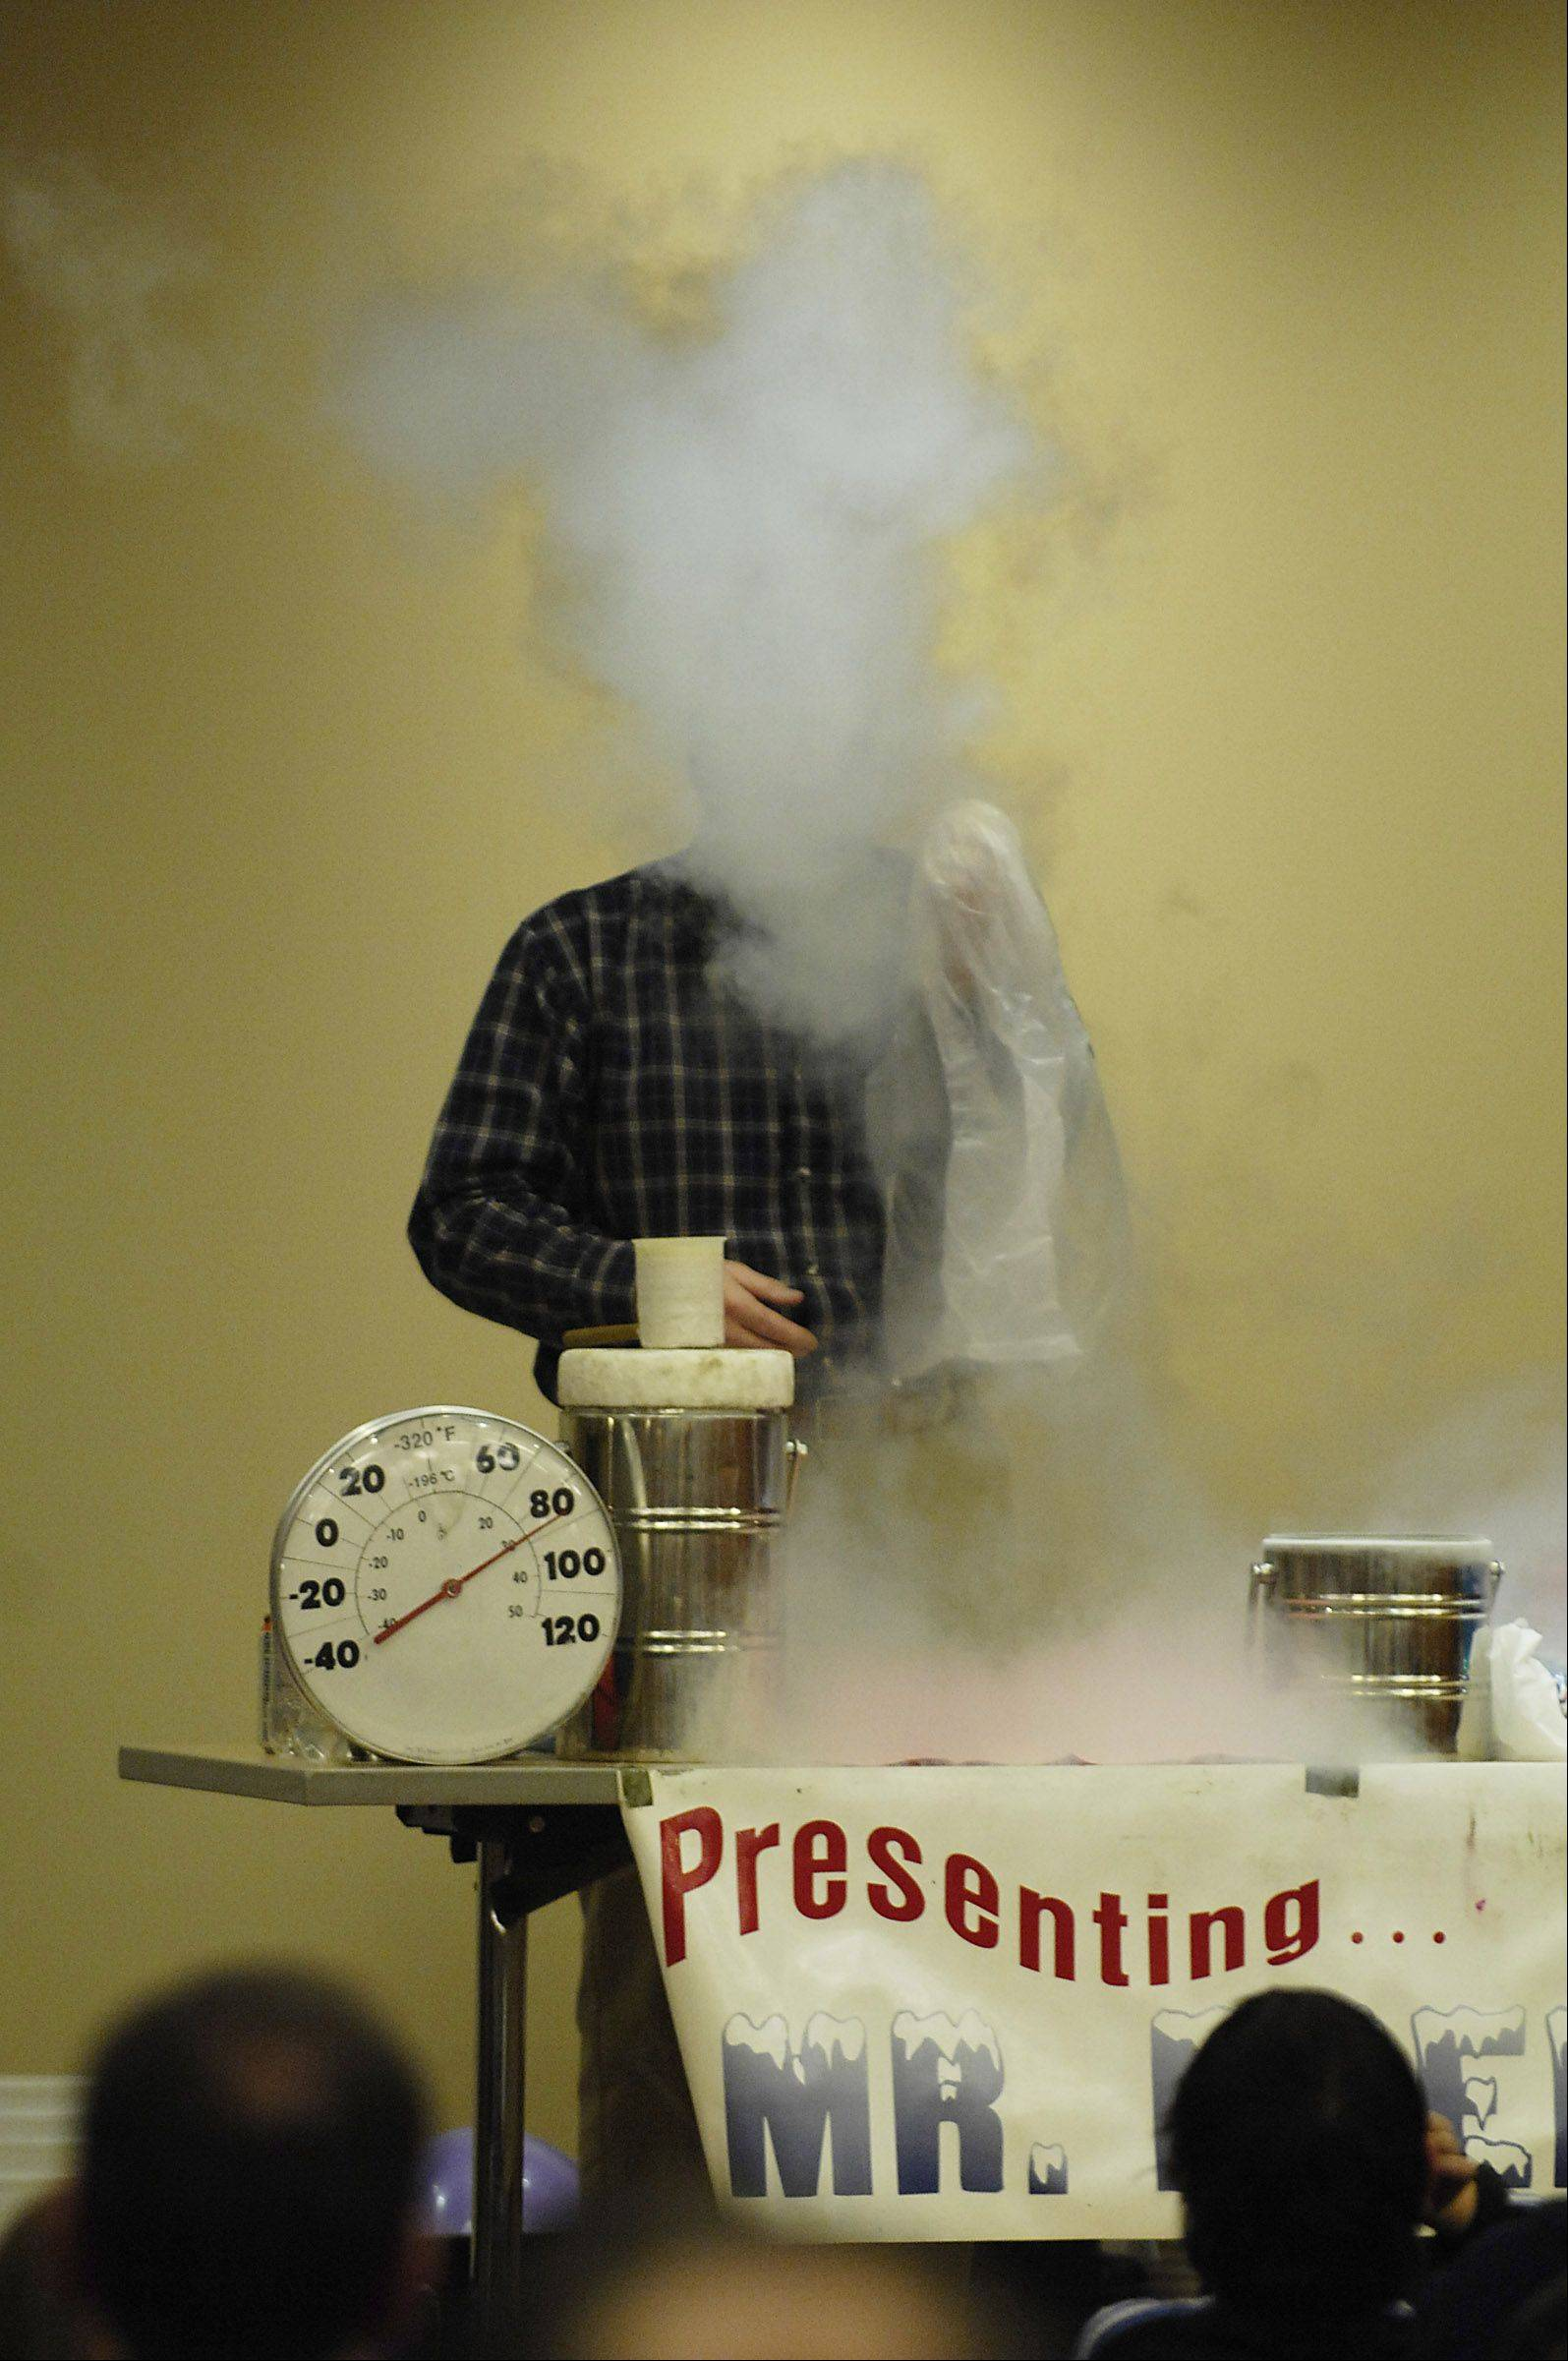 Fermilab's Mr. Freeze will demonstrate cryogenics as a warm-up to the fourth annual Discovery Science Expo, which will be held April 20.